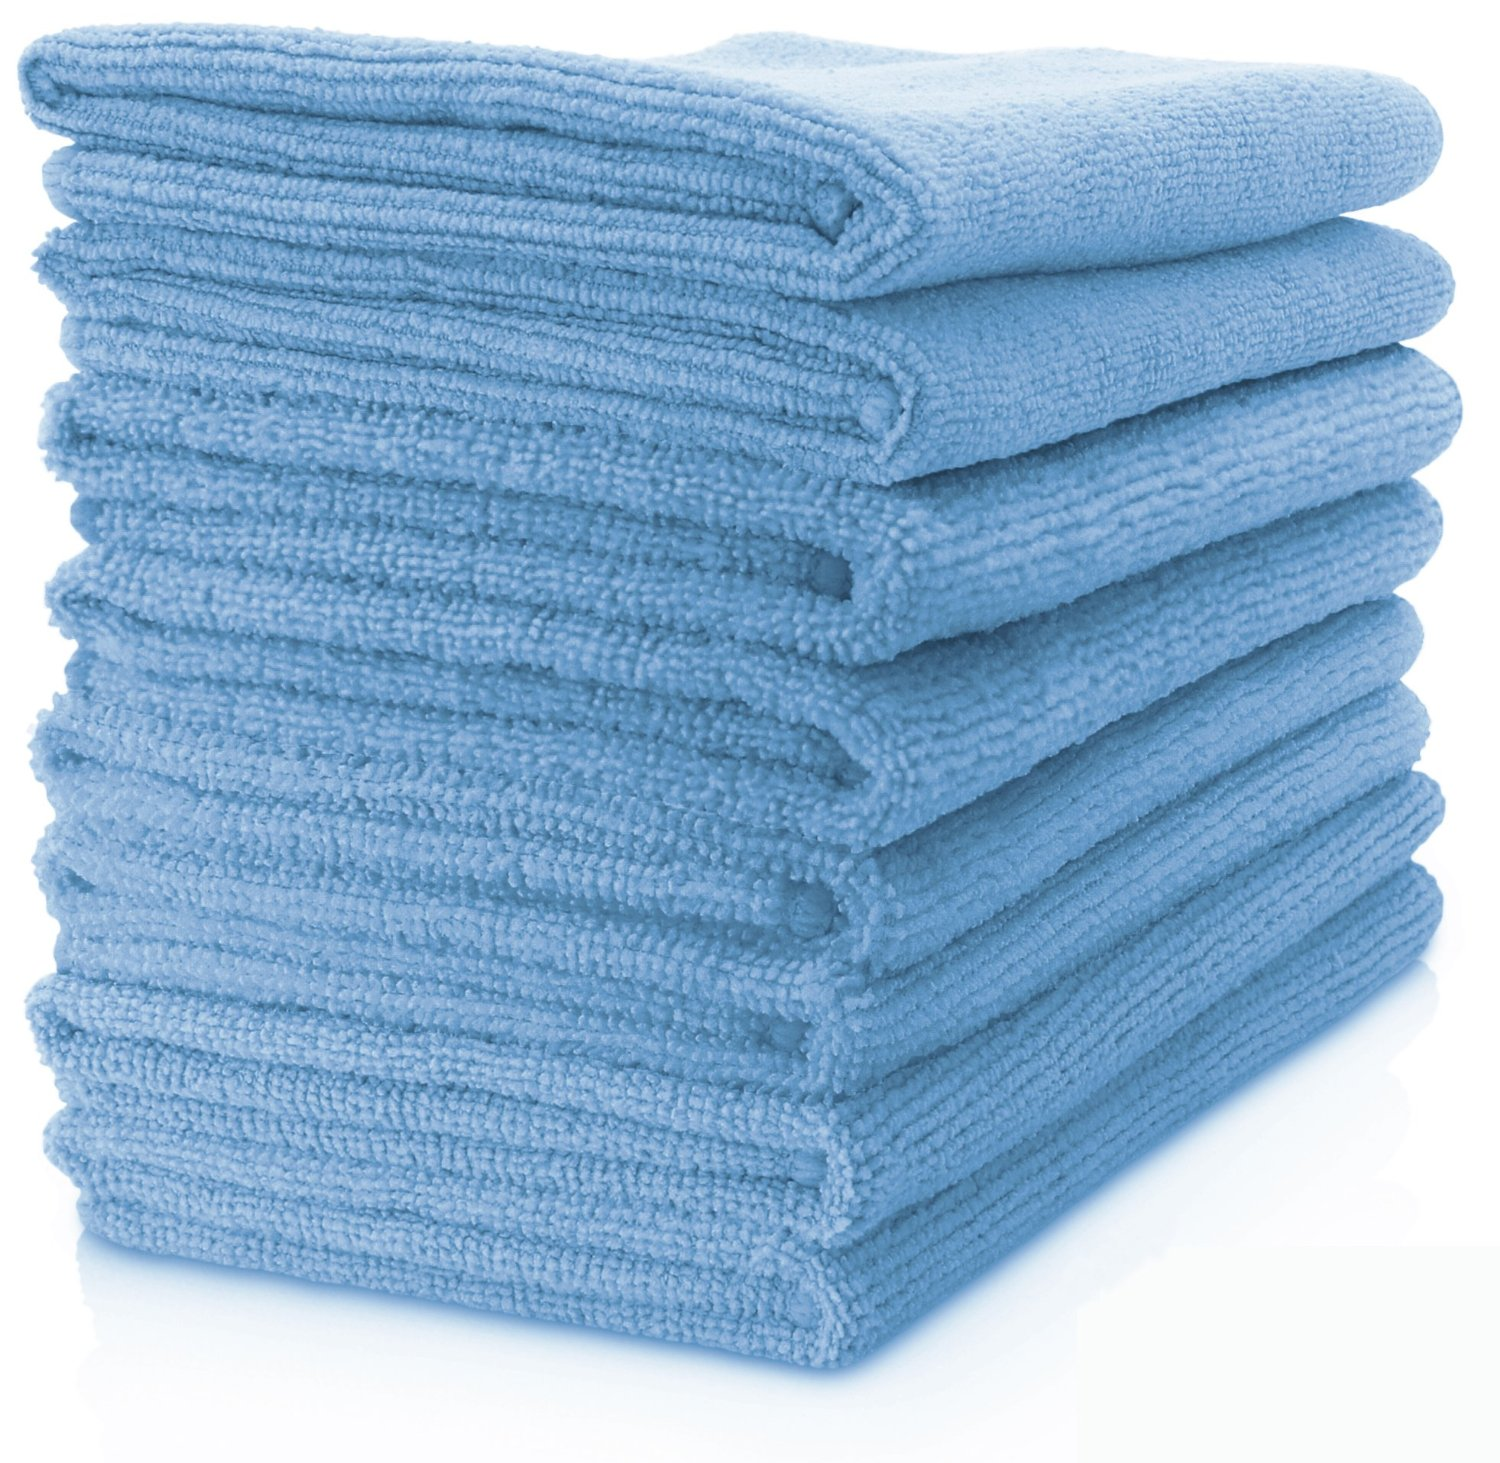 Maxigleam® Blue Microfibre Cloths Pack of 50 Cloths 40x40cms